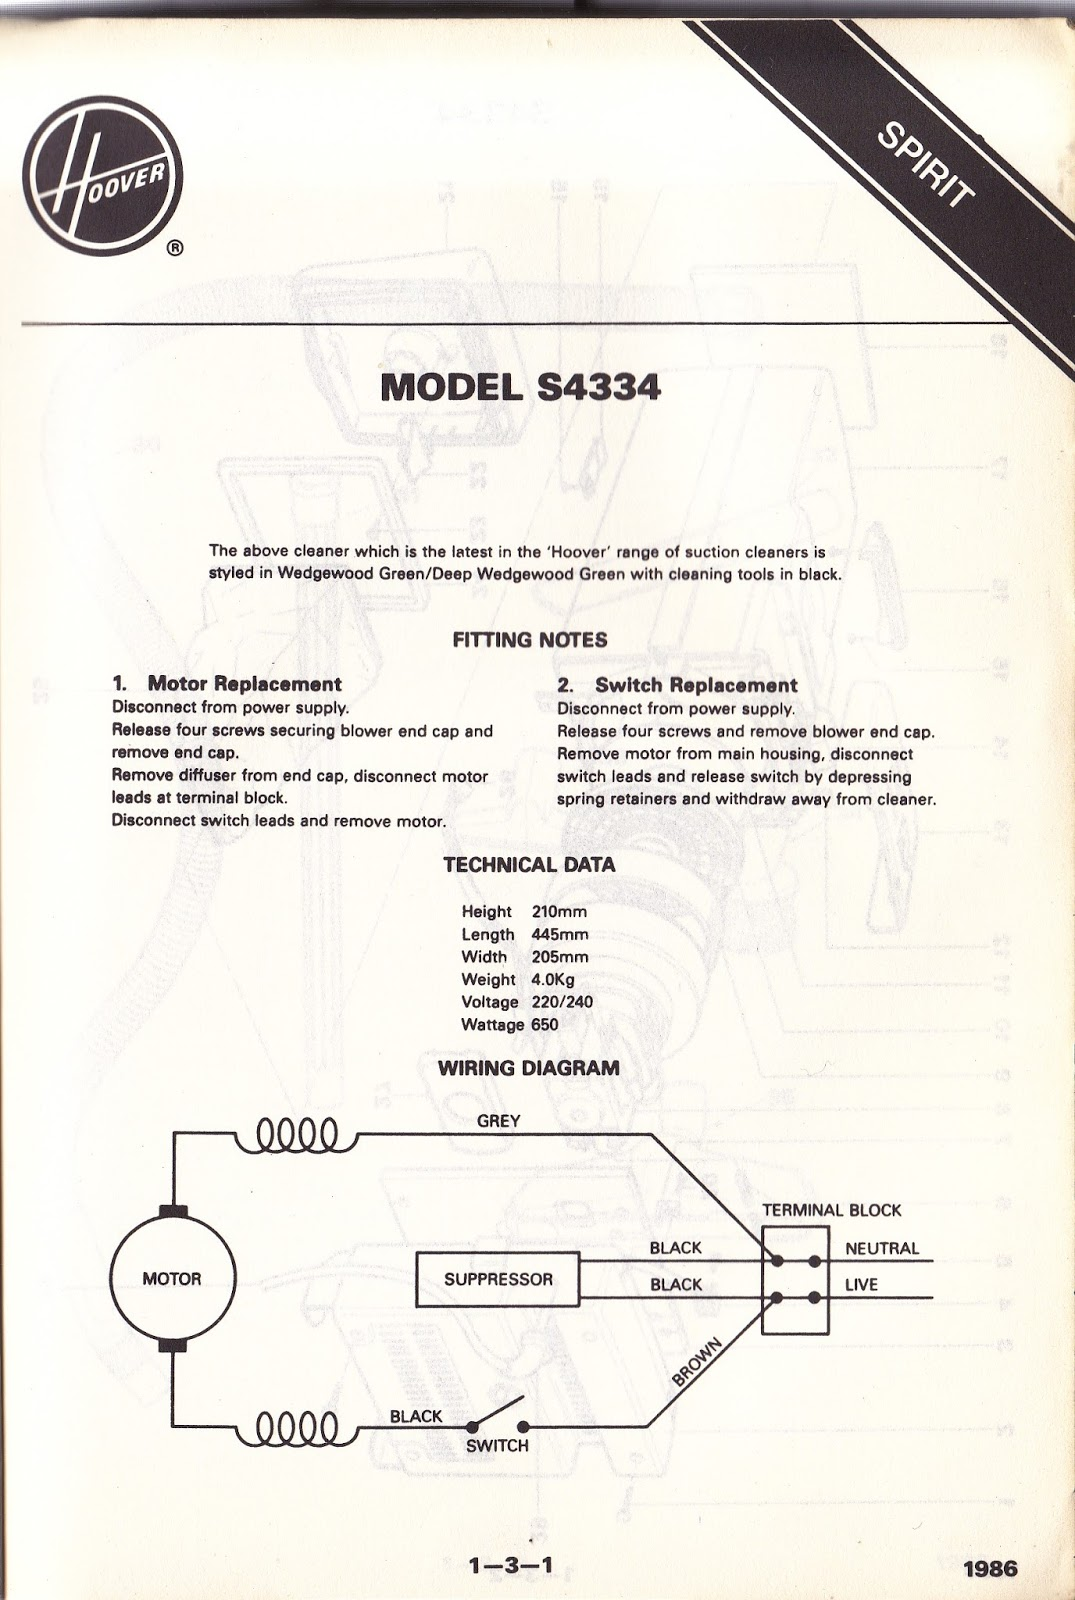 IMG hoover service manual 1987 henry hoover switch wiring diagram at crackthecode.co